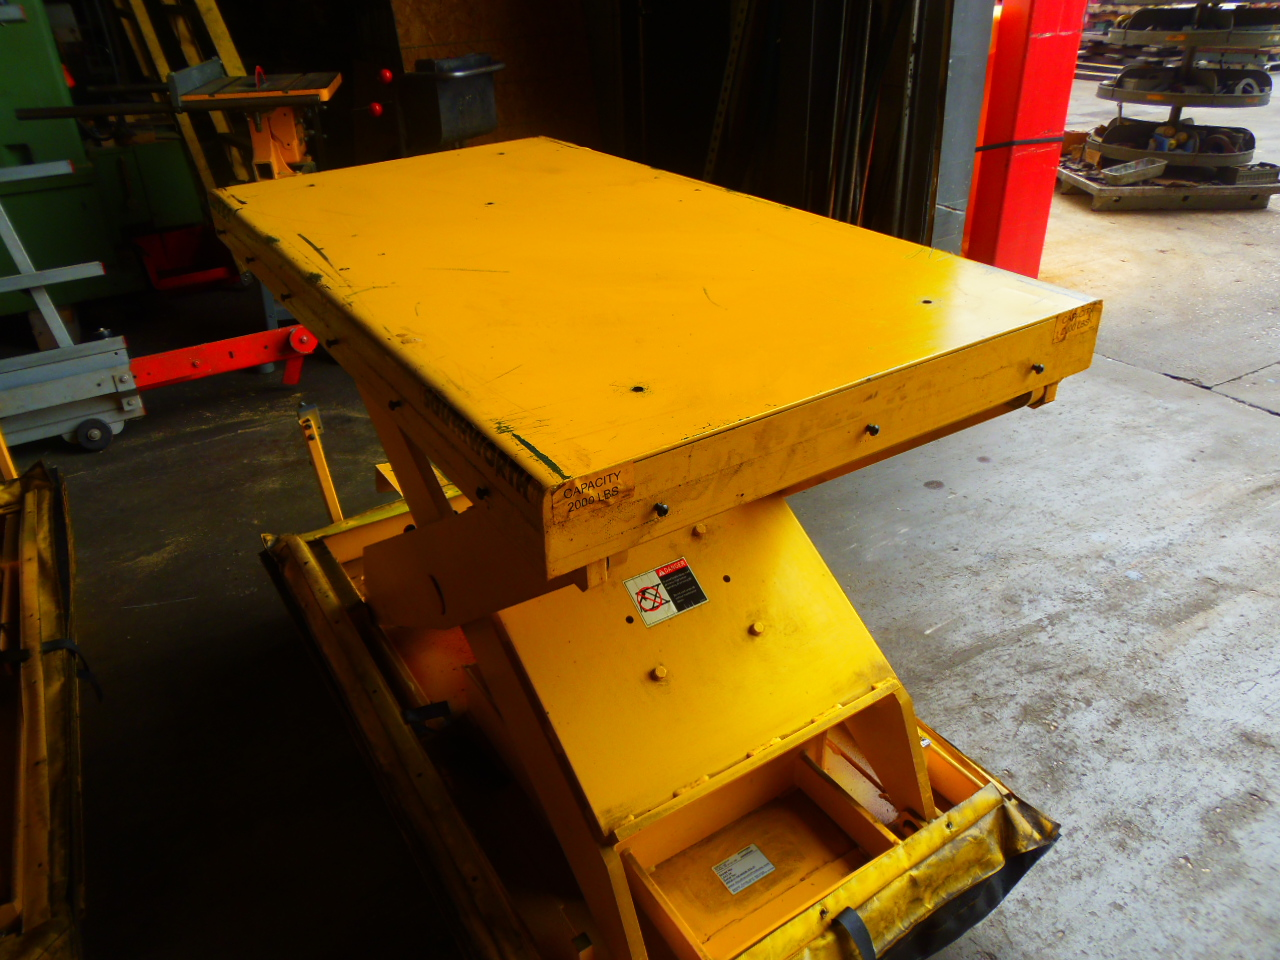 2000 LB. SOUTHWORTH AIR LIFT TABLE, MODEL LSA2-24, PNEUMATIC CROSS TRAVEL, 26 x 48 INCH TABLE, 80 PSI, WHEELS, 11 AVAILABLE